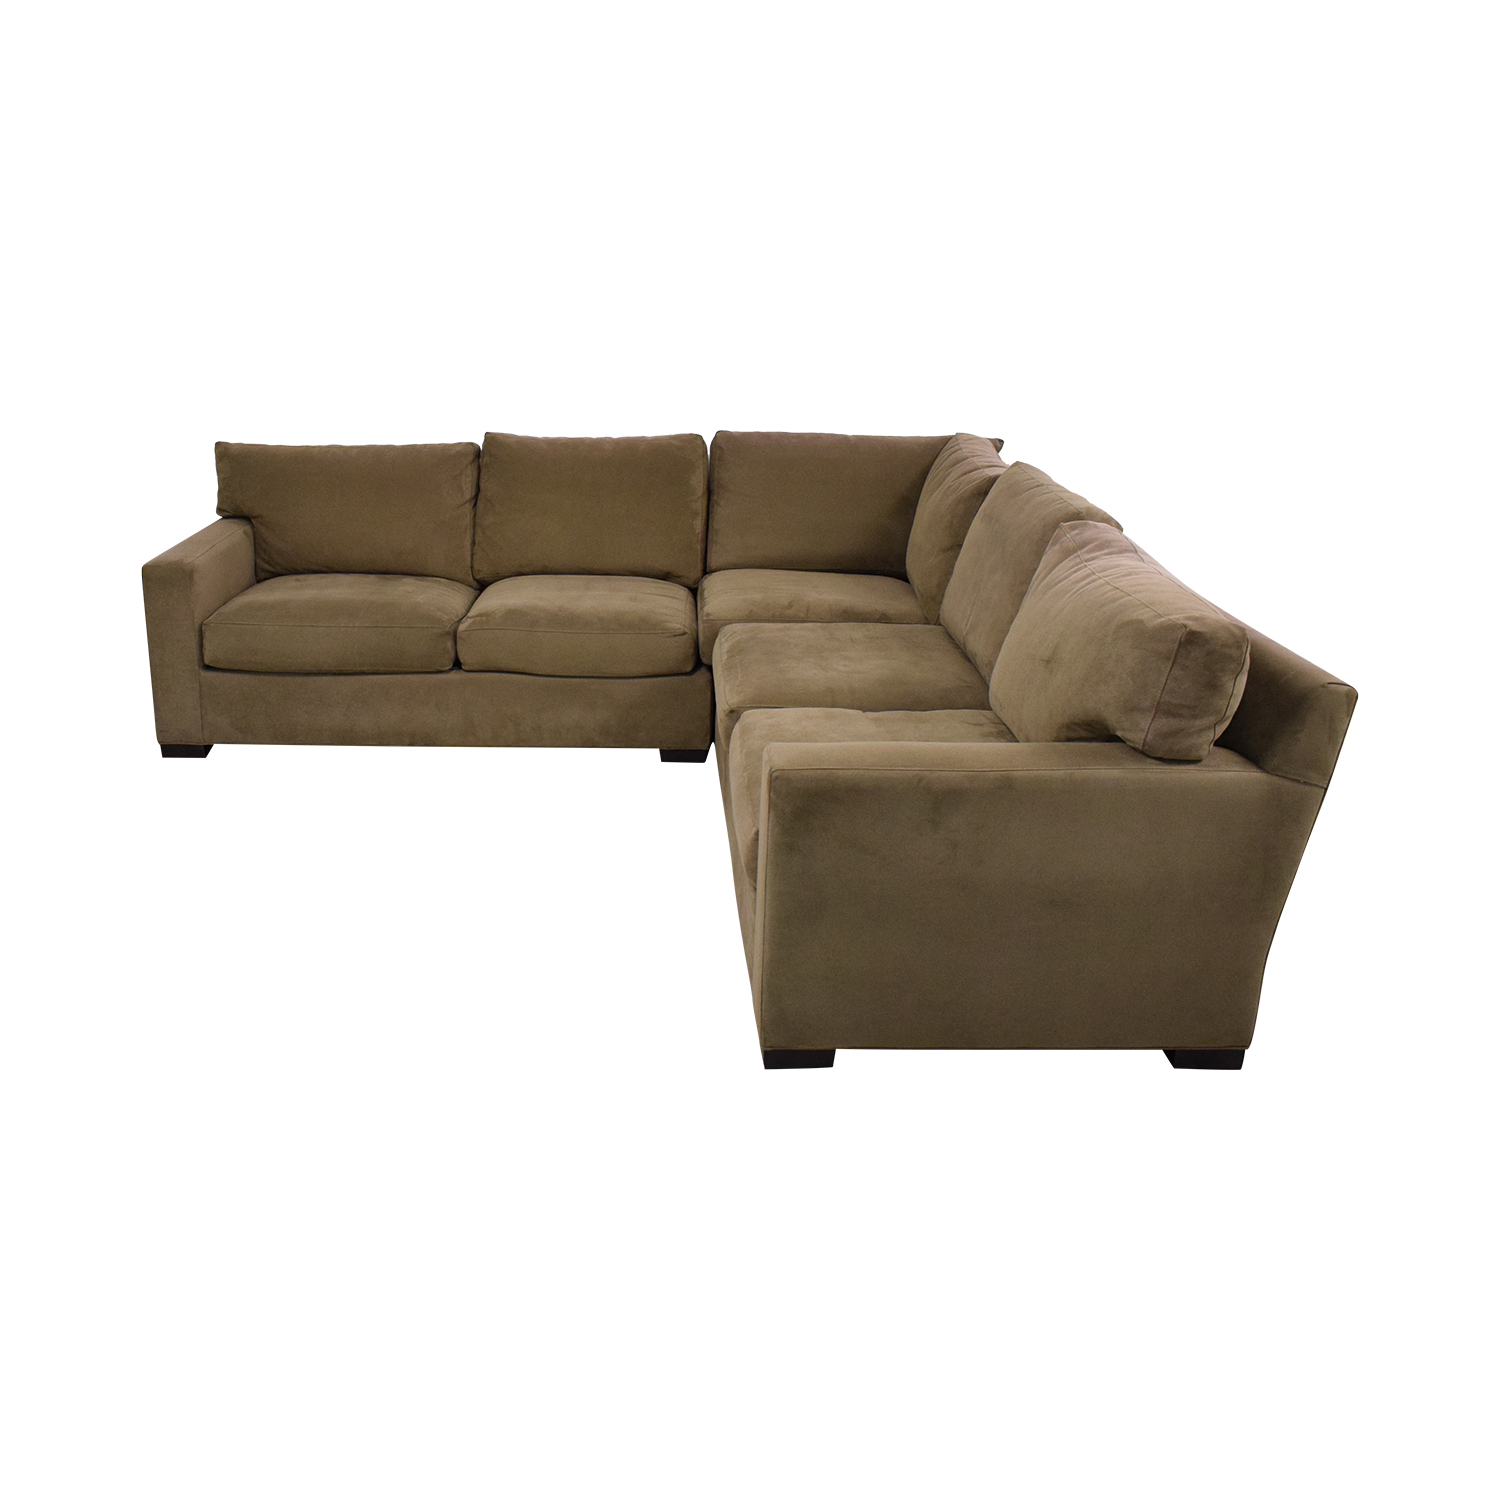 shop Crate & Barrel Axis II 3-Piece Sectional Sofa Crate & Barrel Sectionals